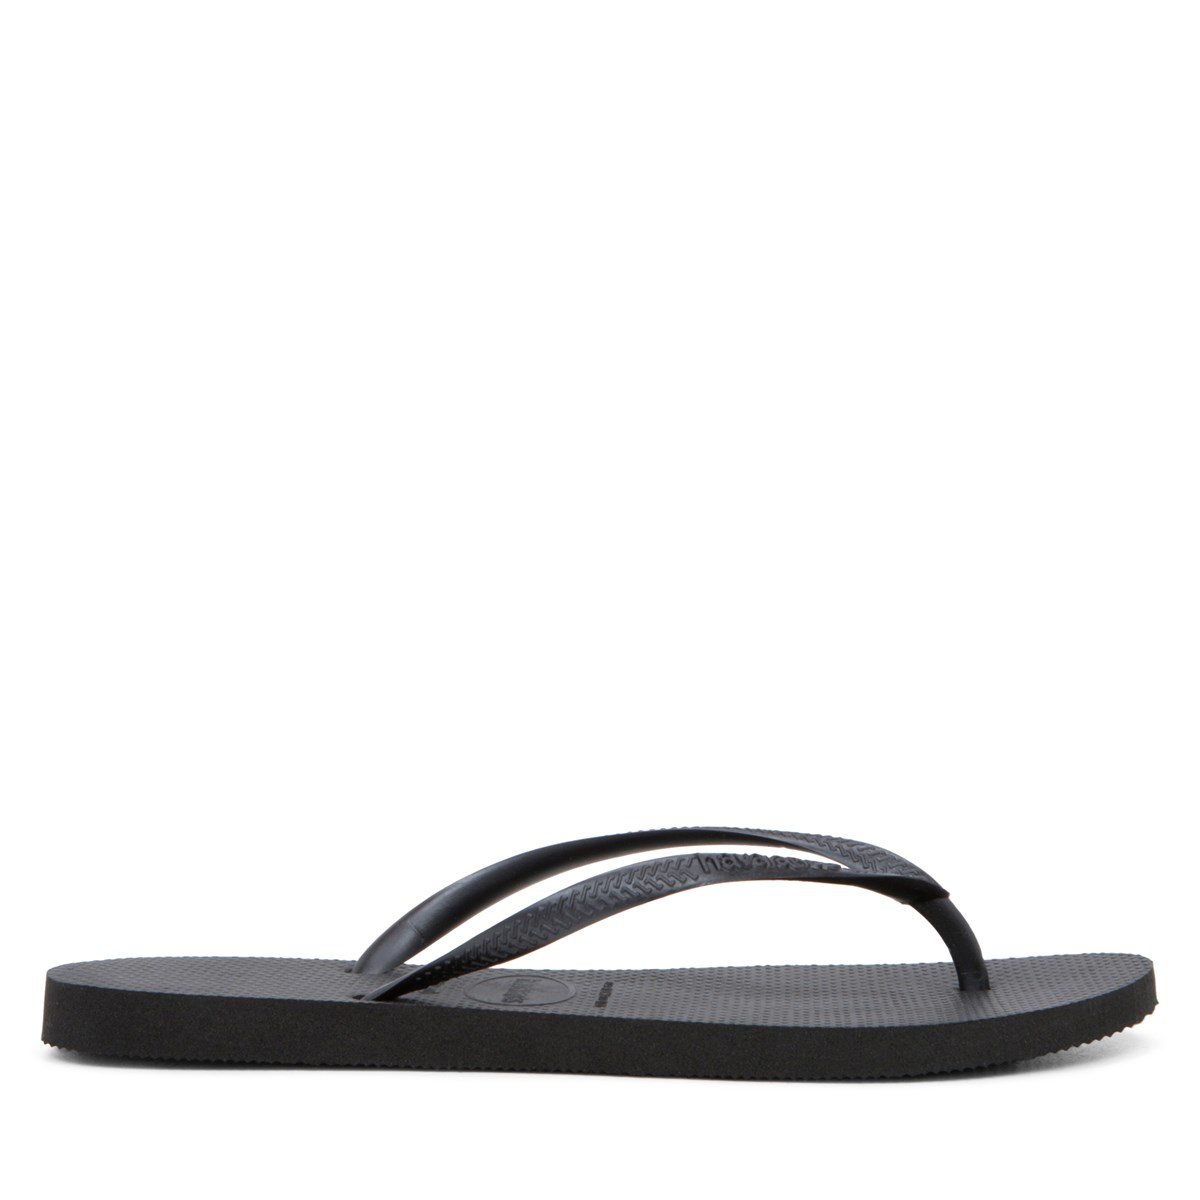 Women's Slim Black Sandal